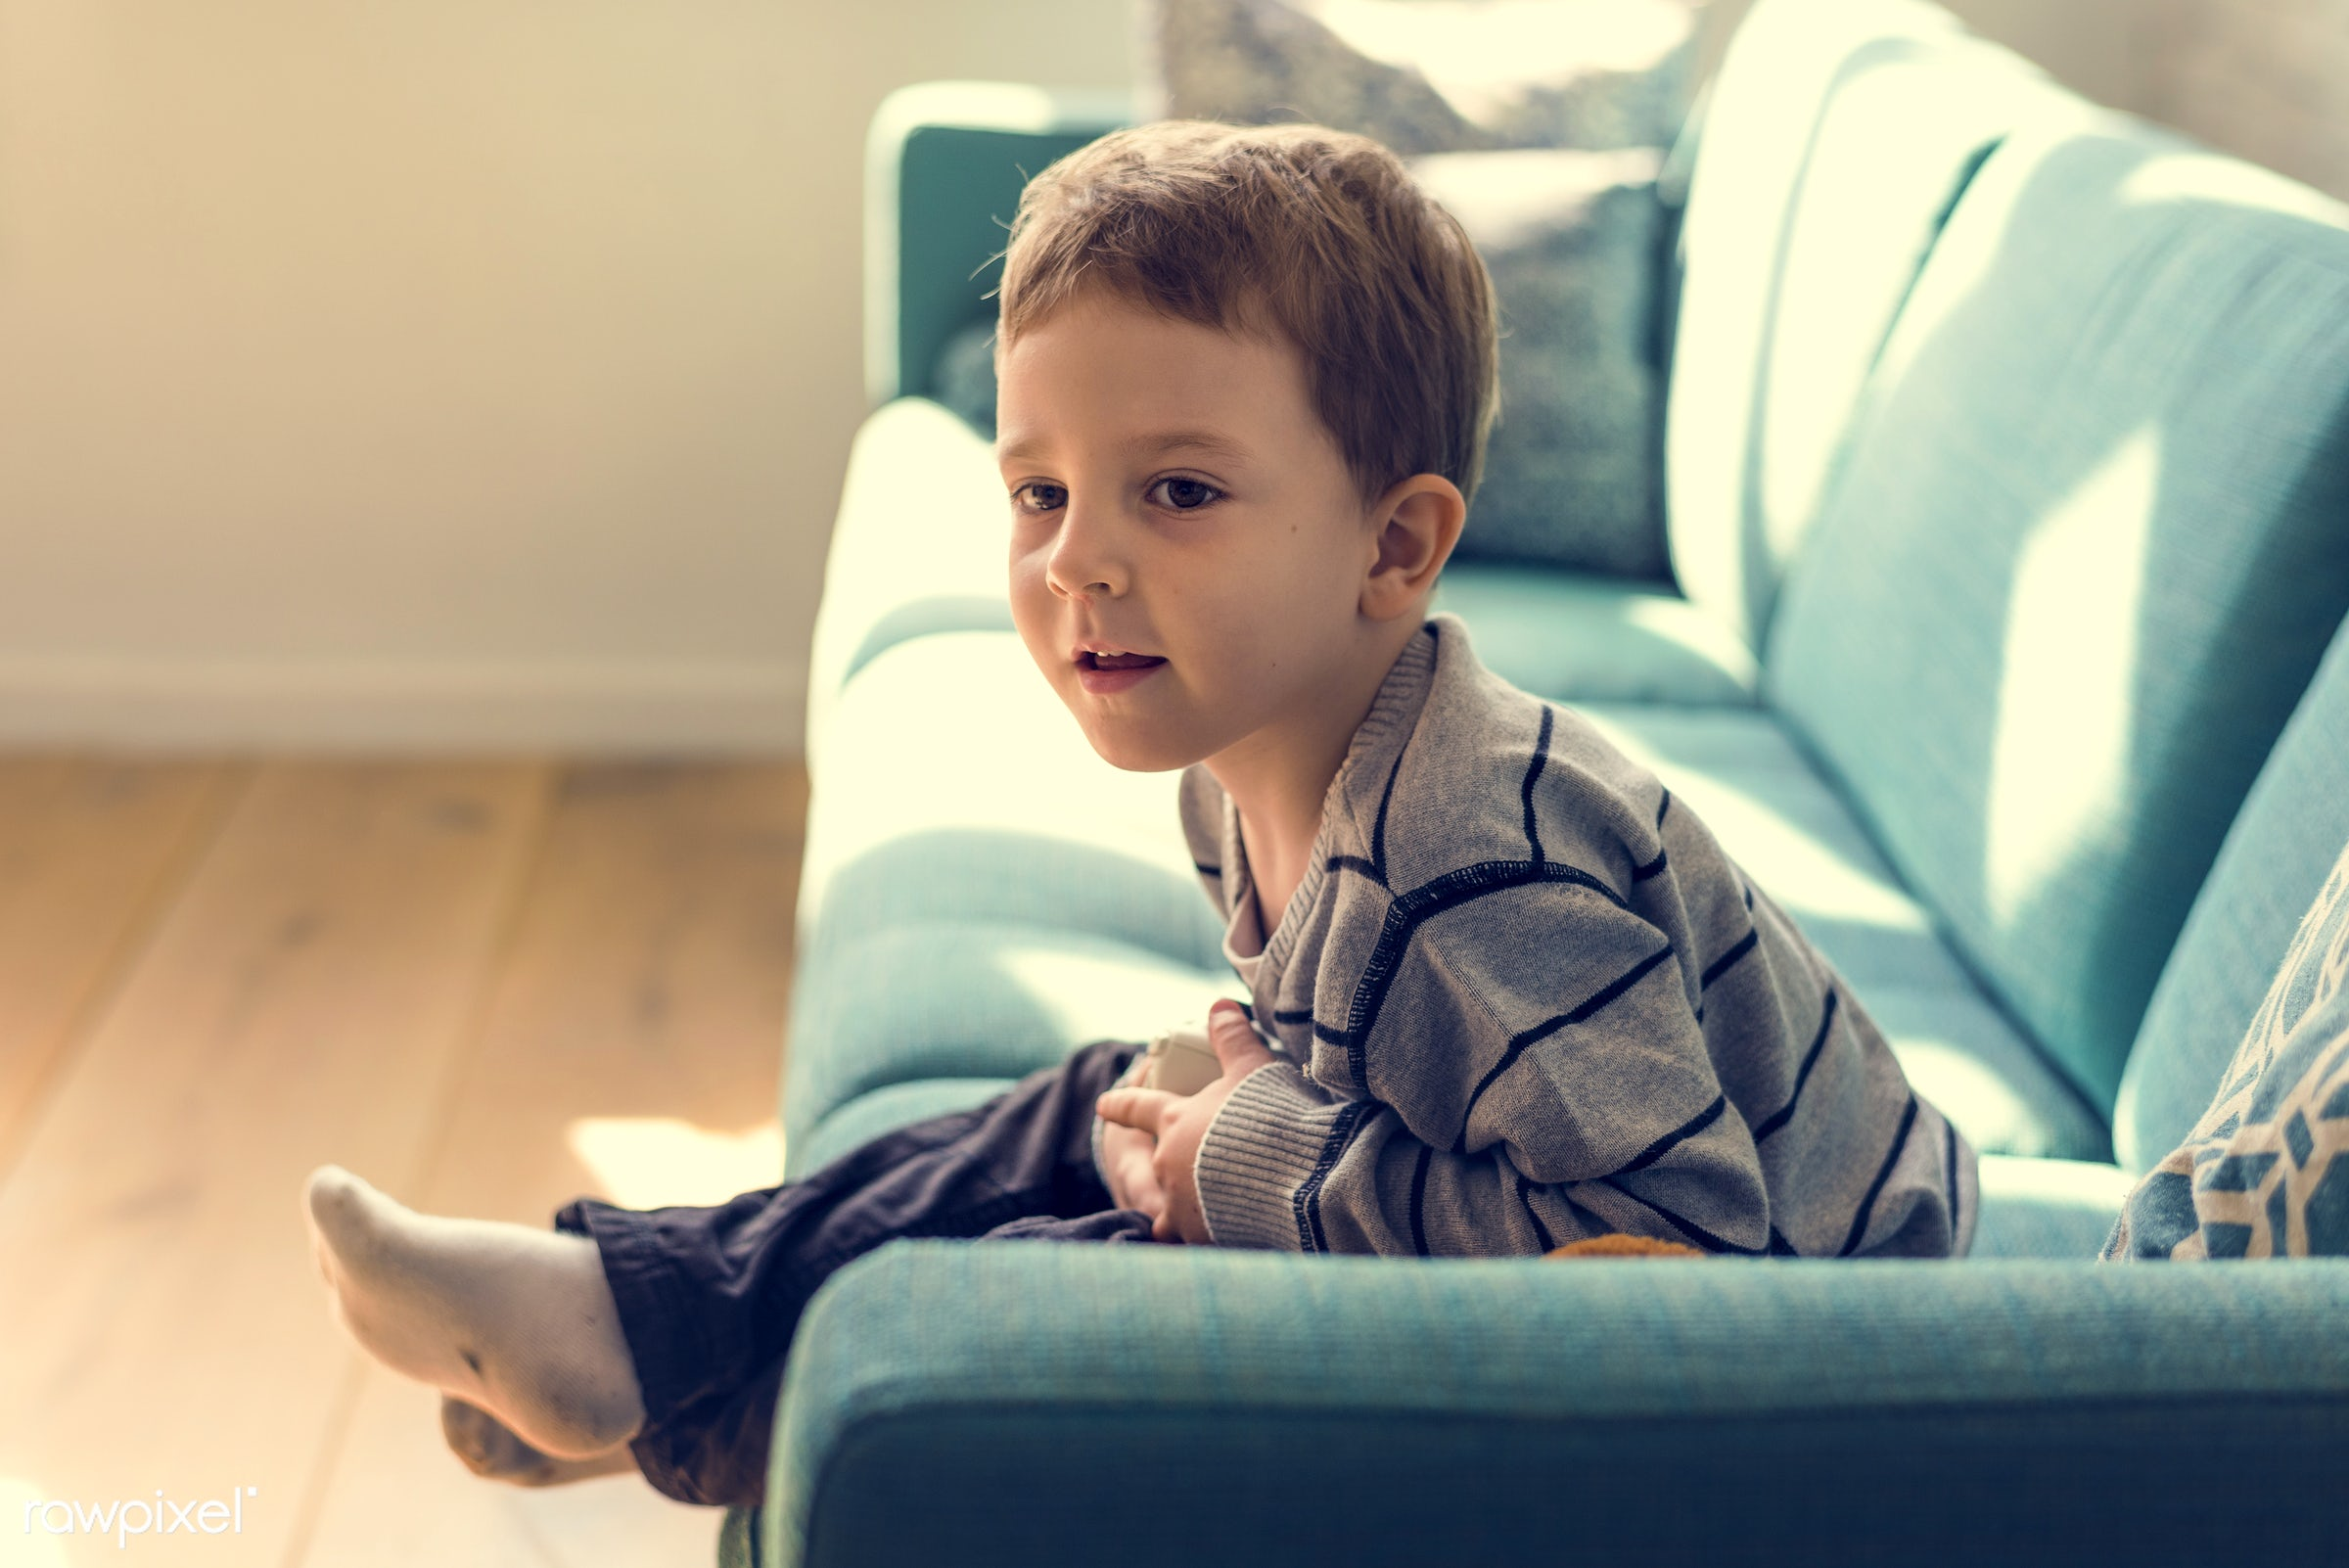 home, relax, cute, kid, caucasian, child, sofa, casual, living room, childhood, cheerful, smiling, happiness, leisure, son,...